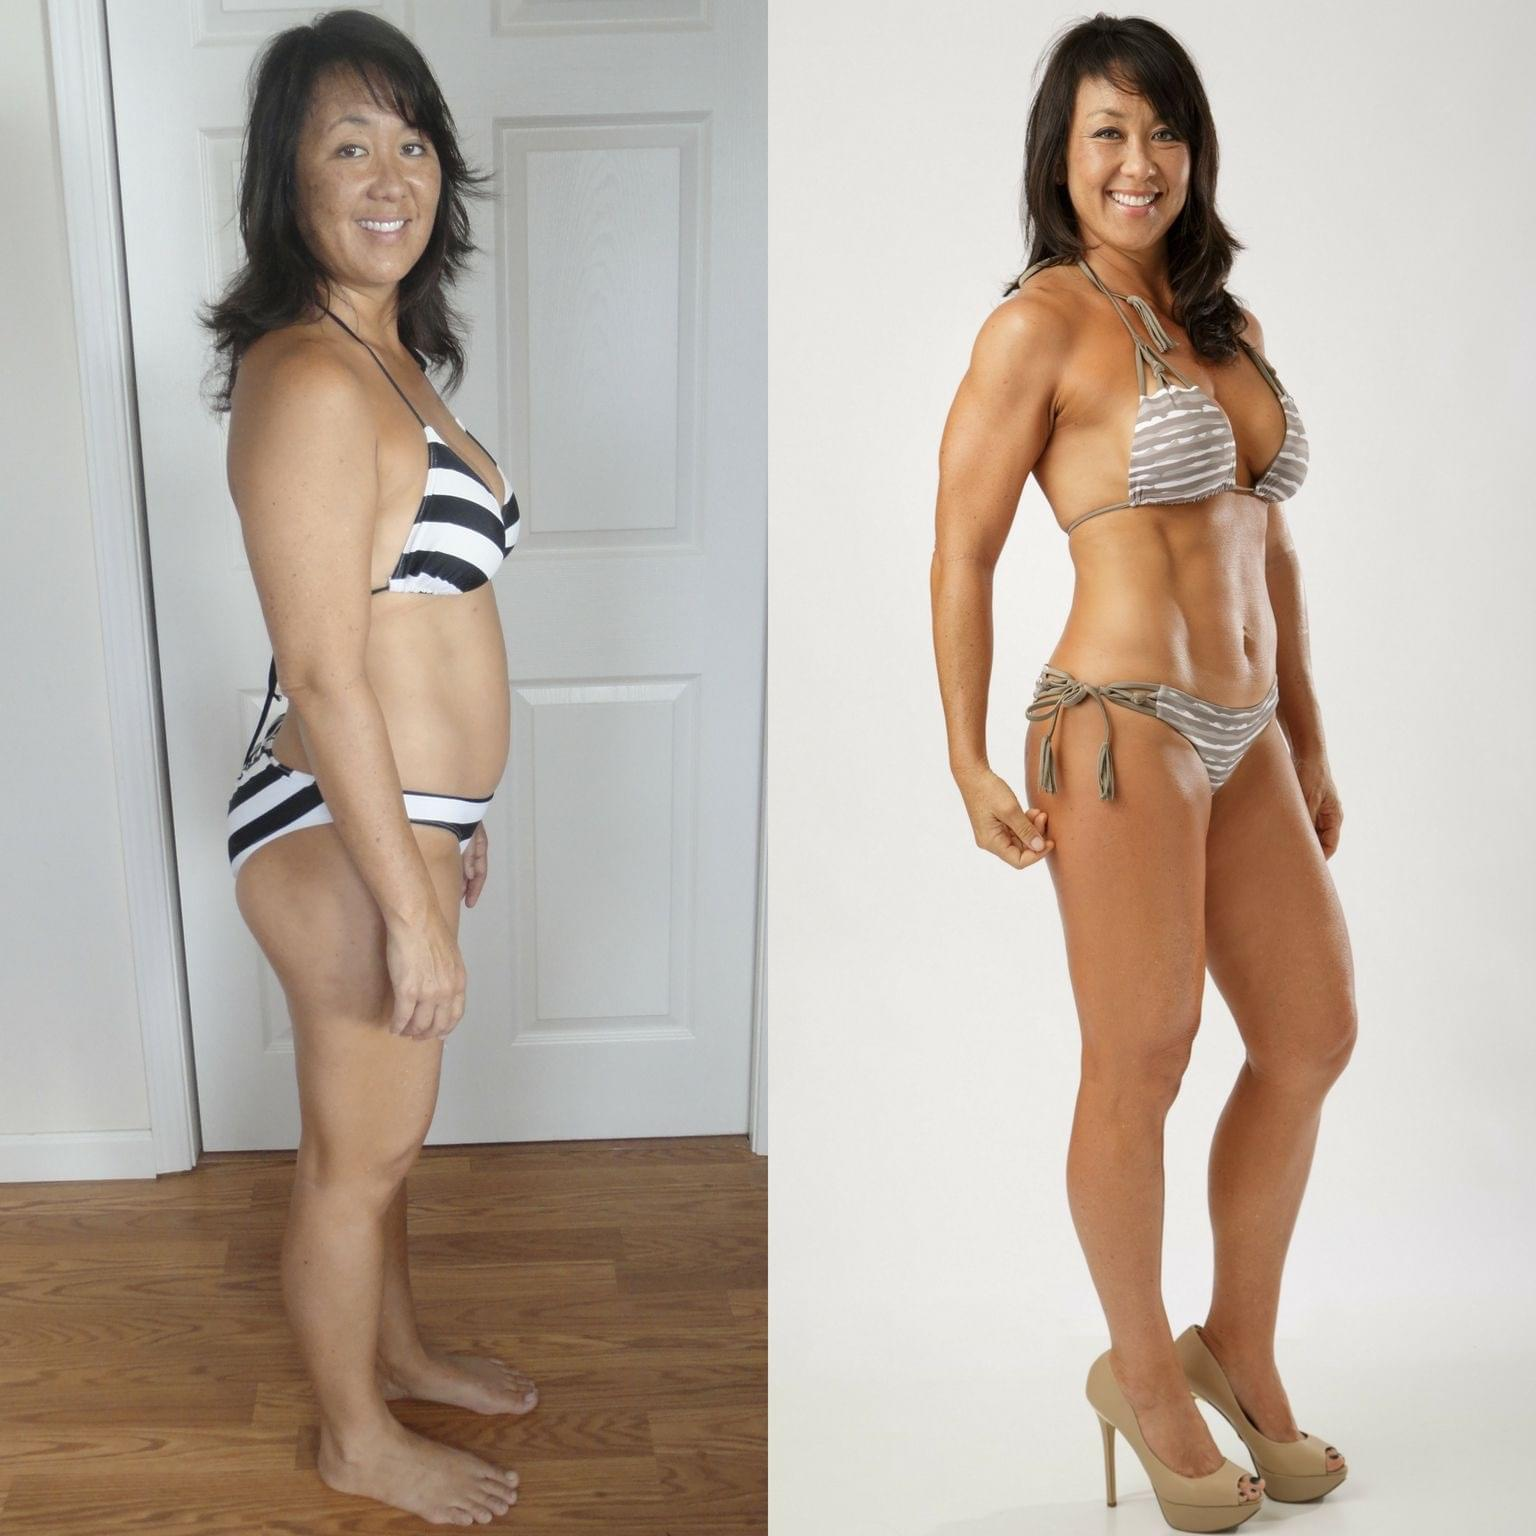 Don't think you can break old habits? Read Julie's Story... - Before meeting Keoni and doing the TRANSFORM Challenge I drank too much, ate the wrong foods, didn't exercise, and hid a smoking habit. I slipped into mild depression. The TRANSFORM Challenge was pivotal in my life: I broke my unhealthy relationship with food, stopped smoking, and only drink on occasion. I feel on top of the world!-Julie Lovett